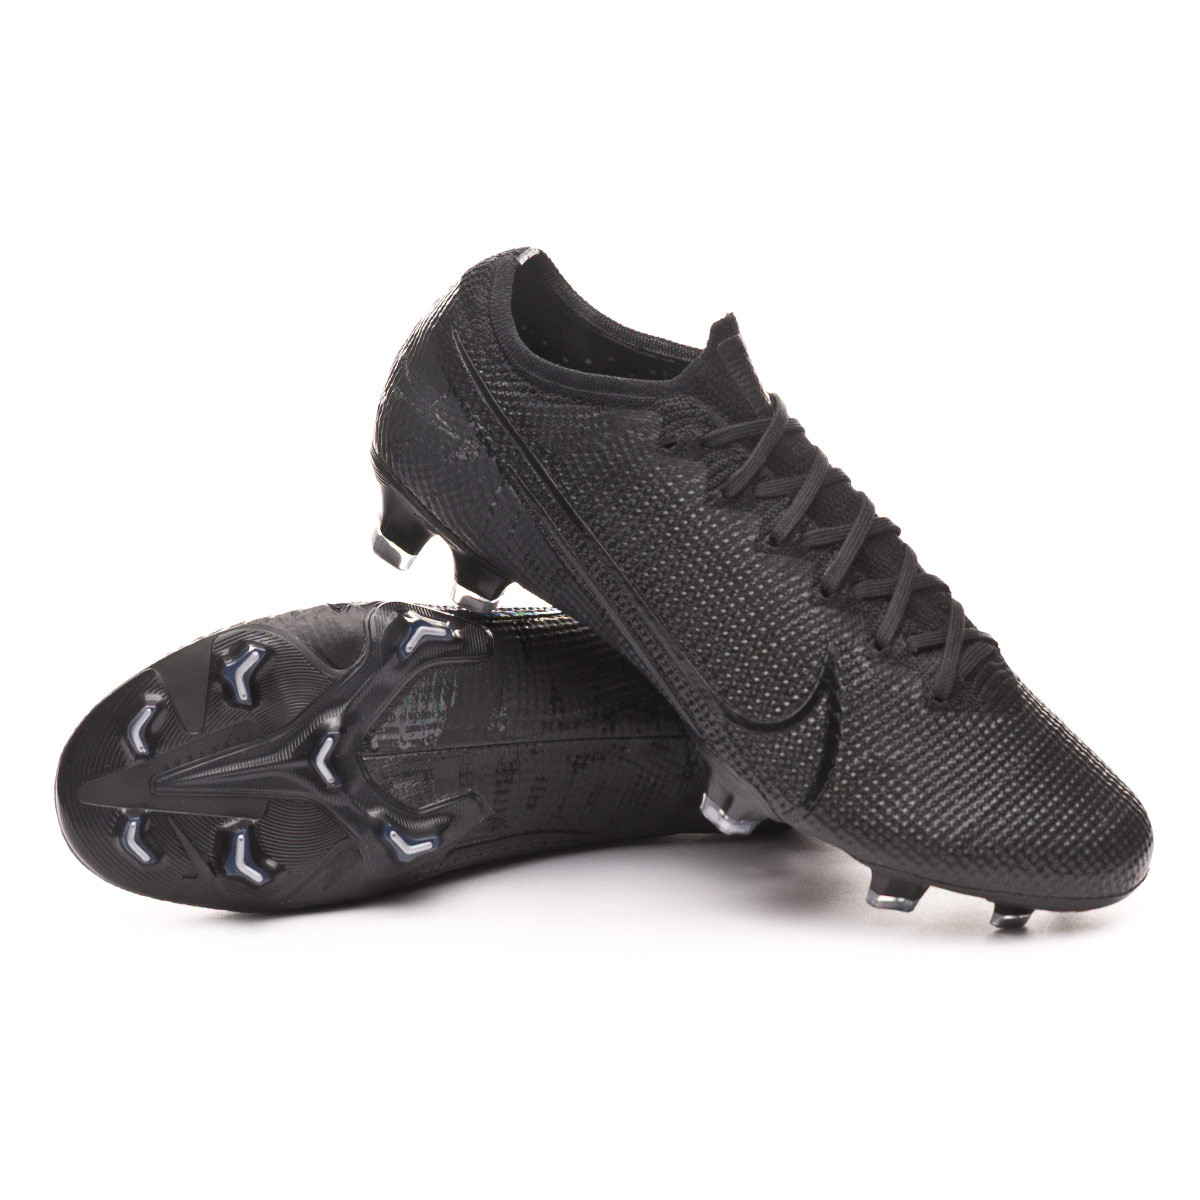 huge discount clearance prices best shoes Nike Mercurial Vapor XIII Elite FG Football Boots